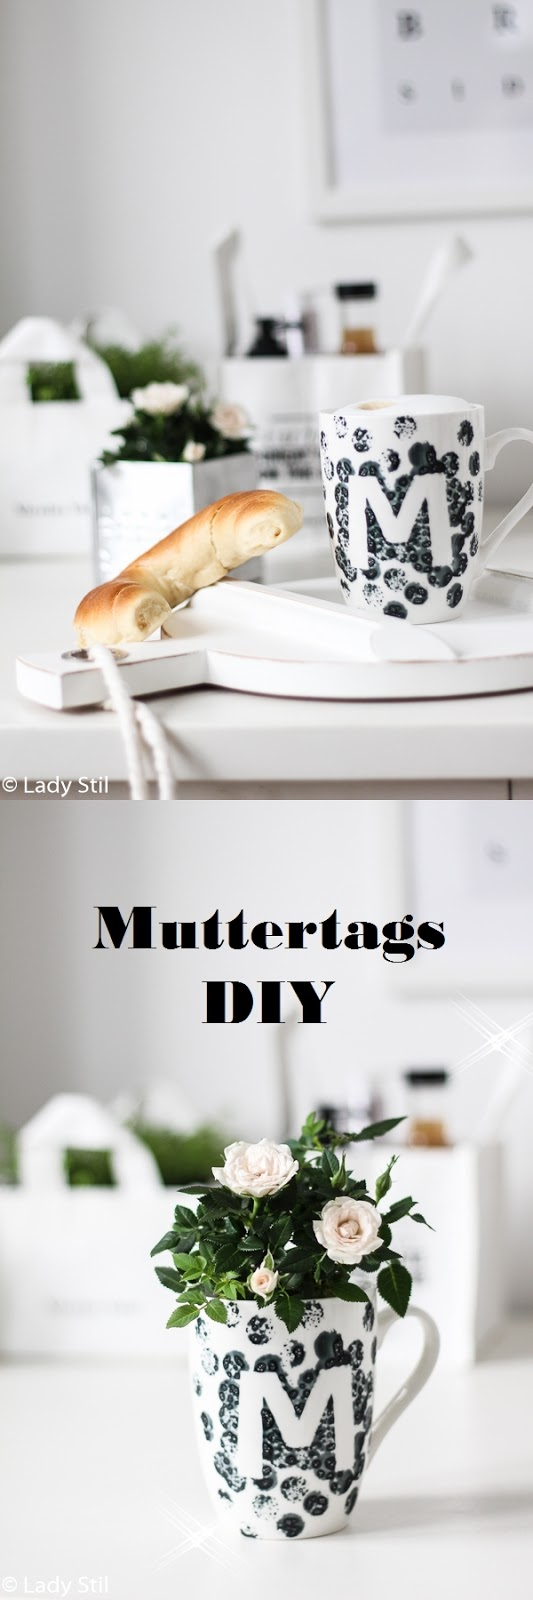 Palettenlounge Anleitung Muttertags Diy - Pimp Your Coffee Mug - Lady-stil.de